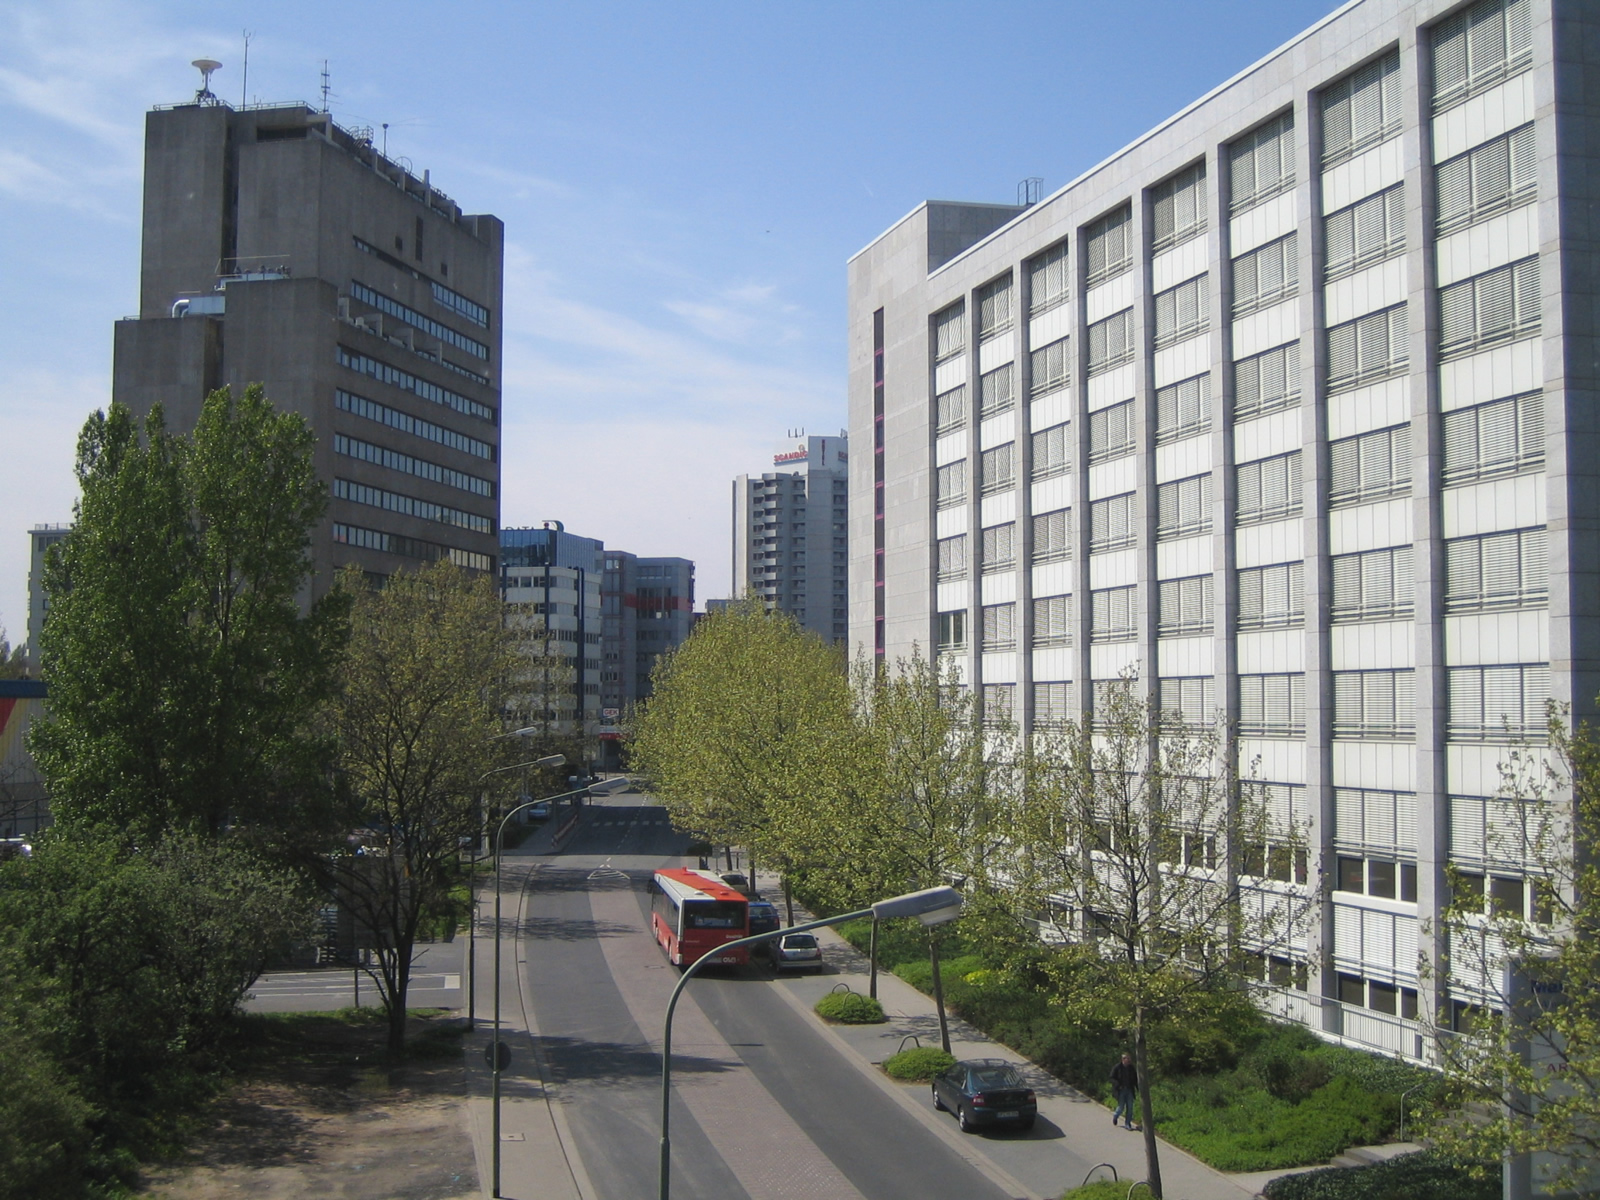 FileOffenbach kaiserleistrassejpg  Wikimedia Commons